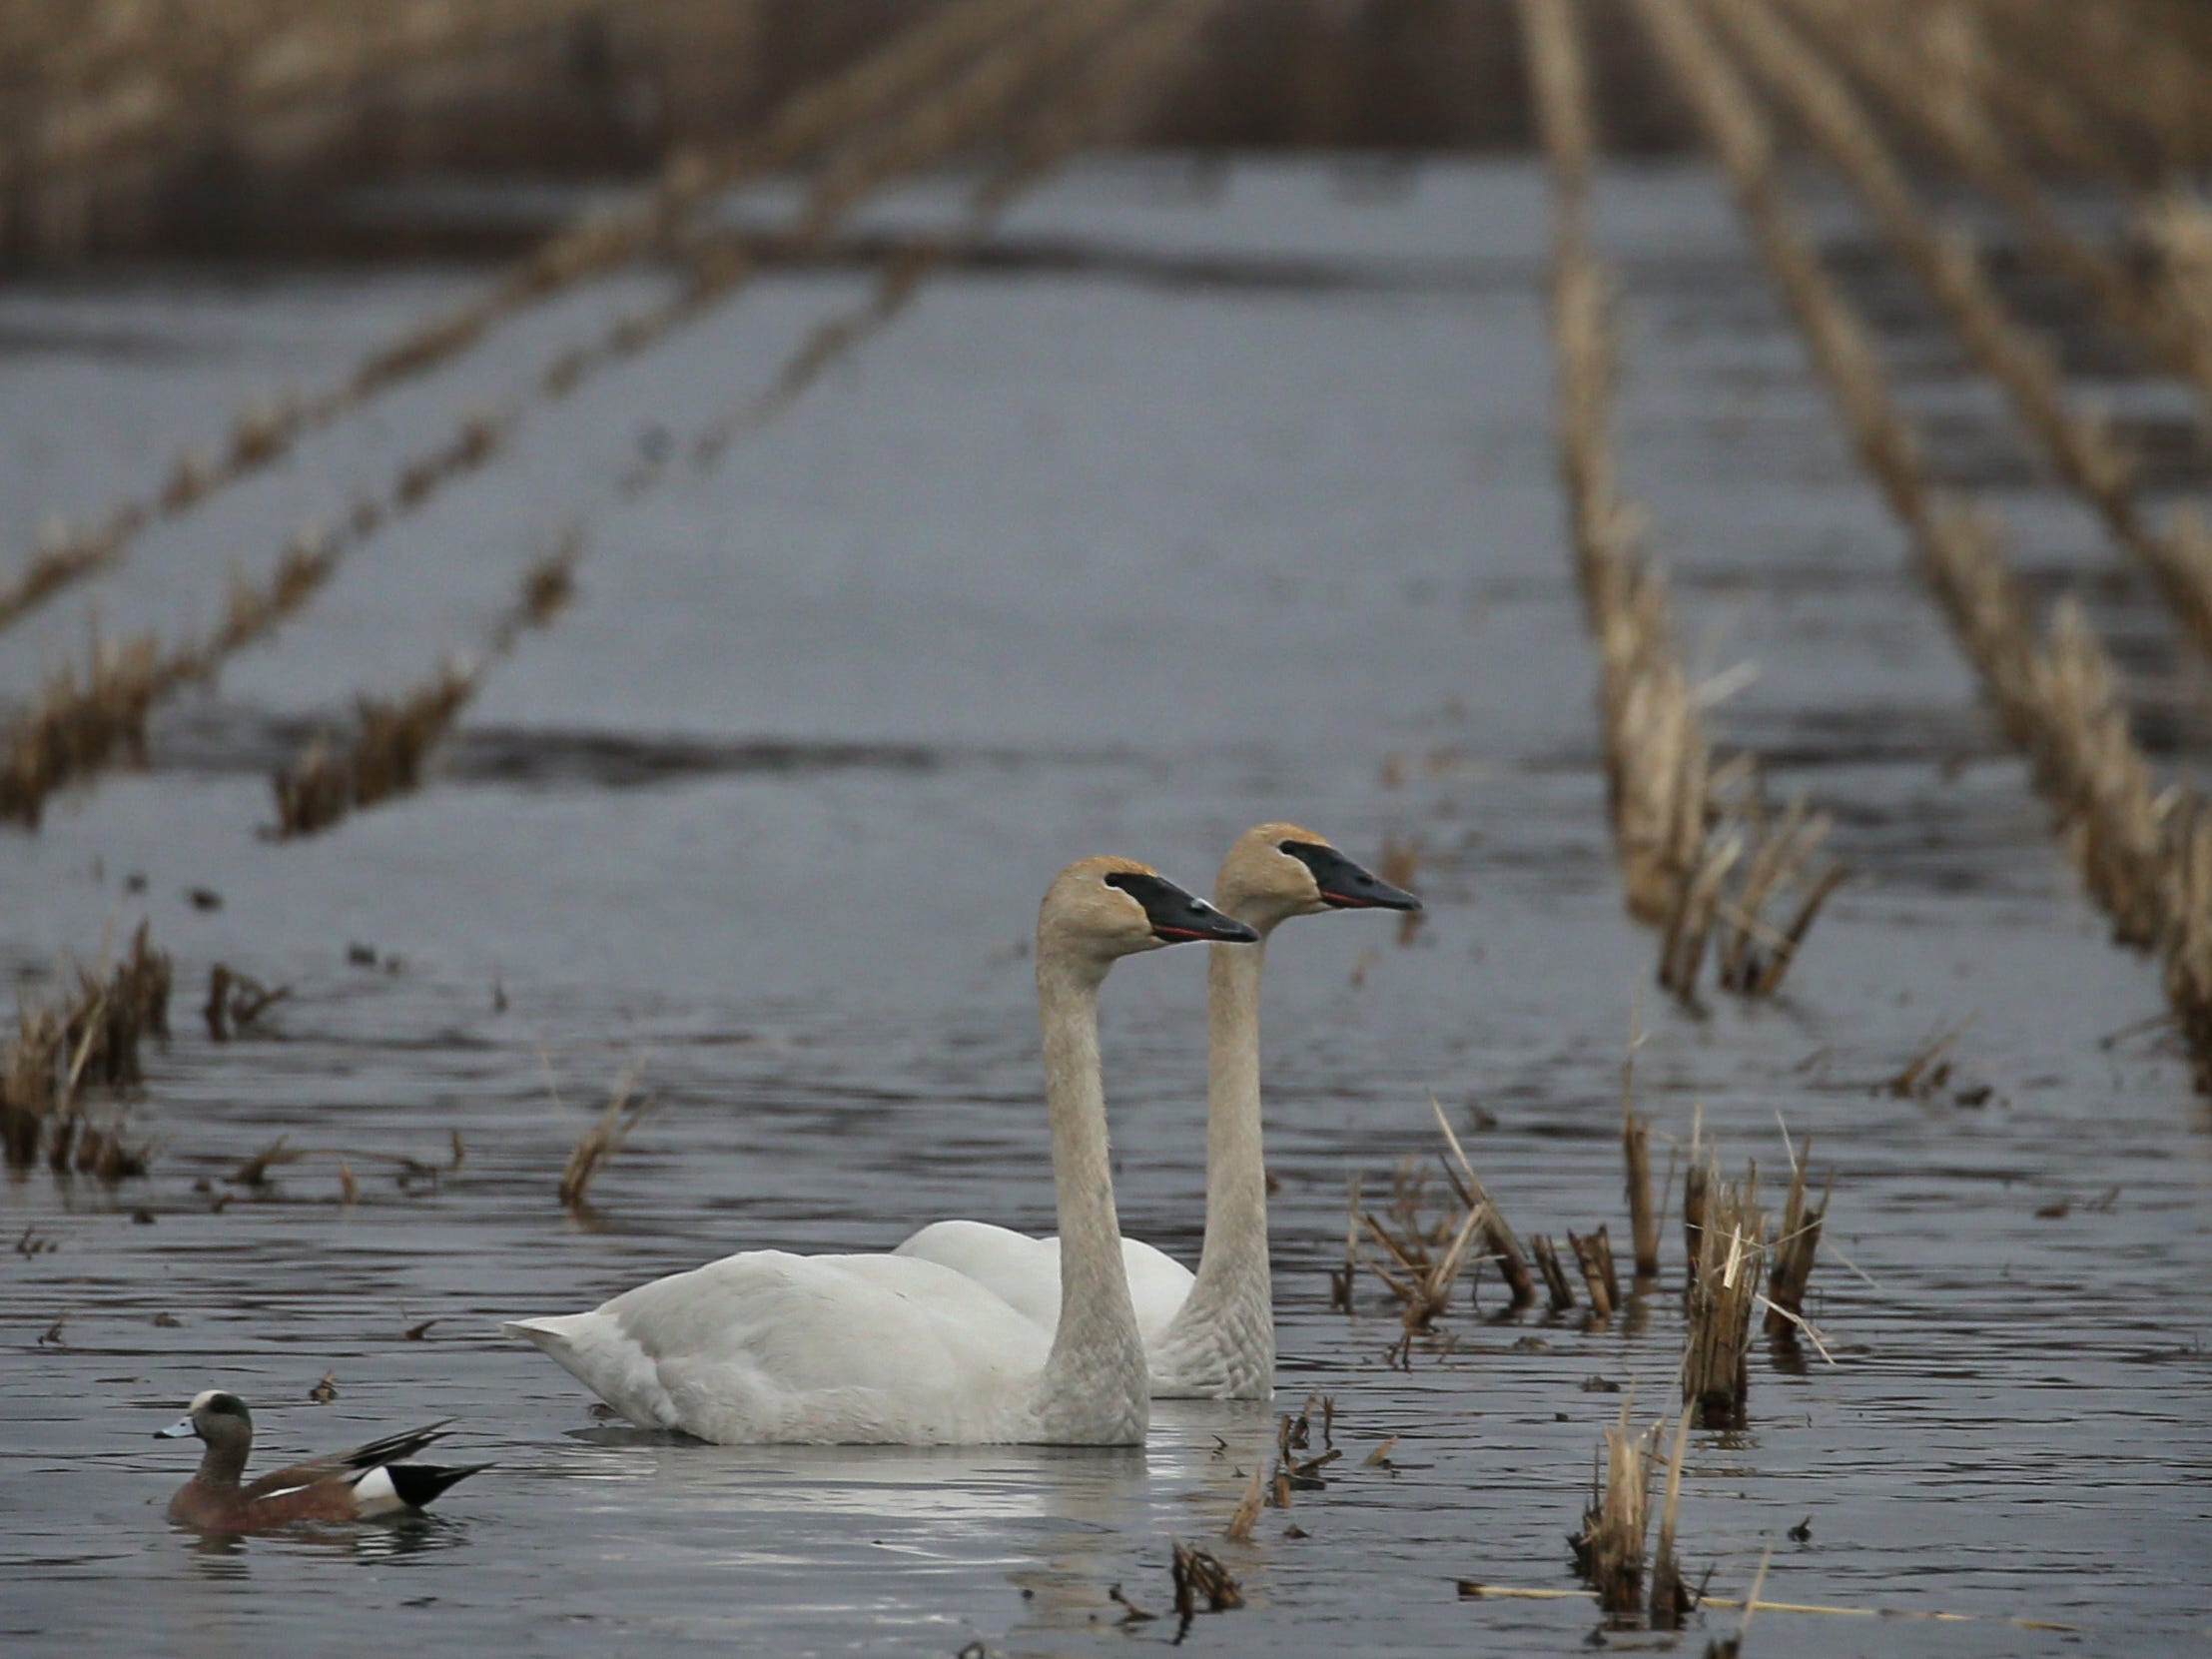 A pair of Trumpeter Swans, and a lone American Wigeon, look for food in a flooded corn field along Route 31 outside Savannah Thursday, March 21, 2019.  Hundreds of Trumpeter and Tundra Swans are joining with a approximately three dozen species of waterfowl in migrating north, using Montezuma as a stopover.